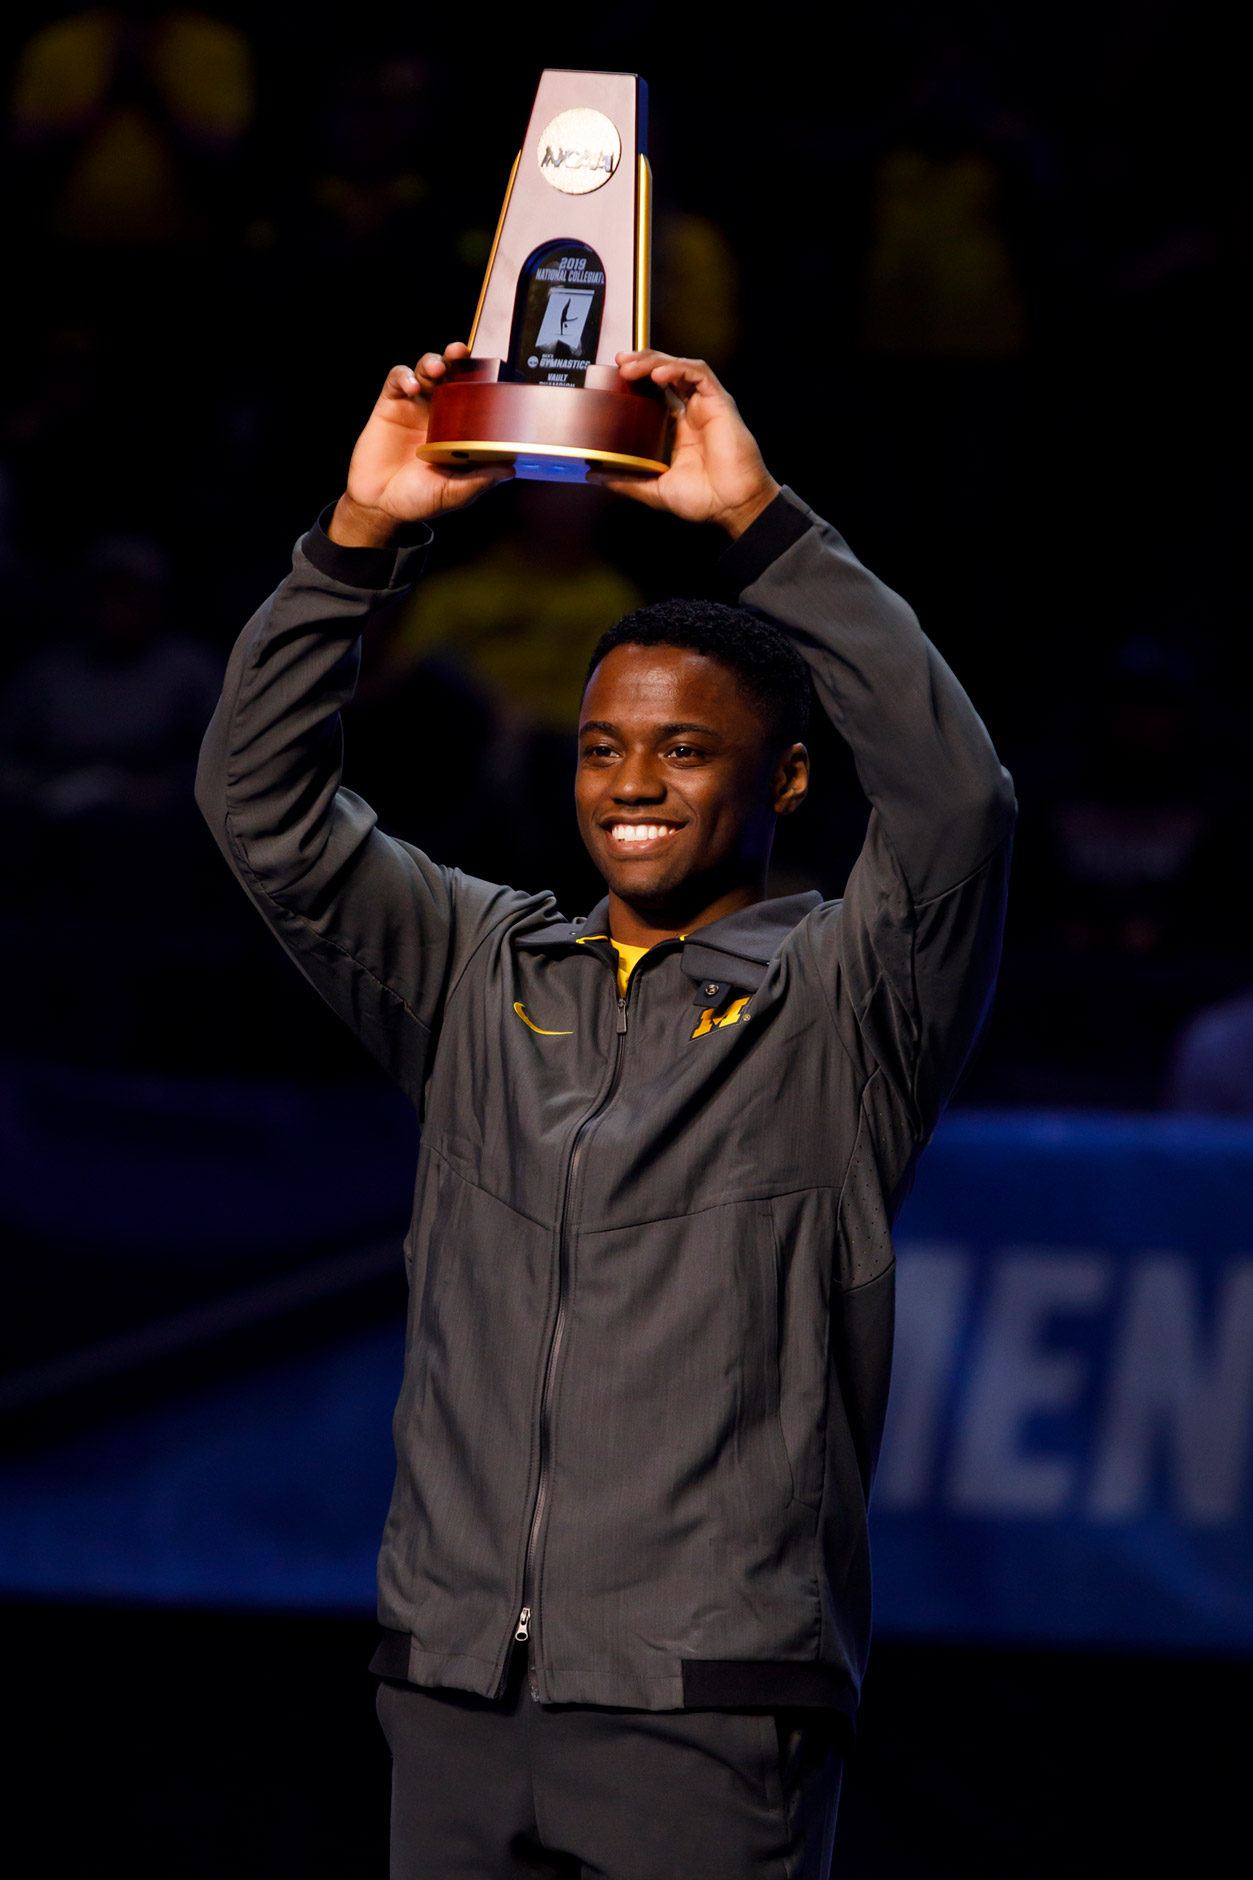 Michigan's Anthony McCallum poses for a photo after winning a national championship in the vault at the NCAA Men's Gymnastics Championships on Saturday, April 20, 2019, at the State Farm Center in Champaign, Illinois. (Photo by James Brosher)